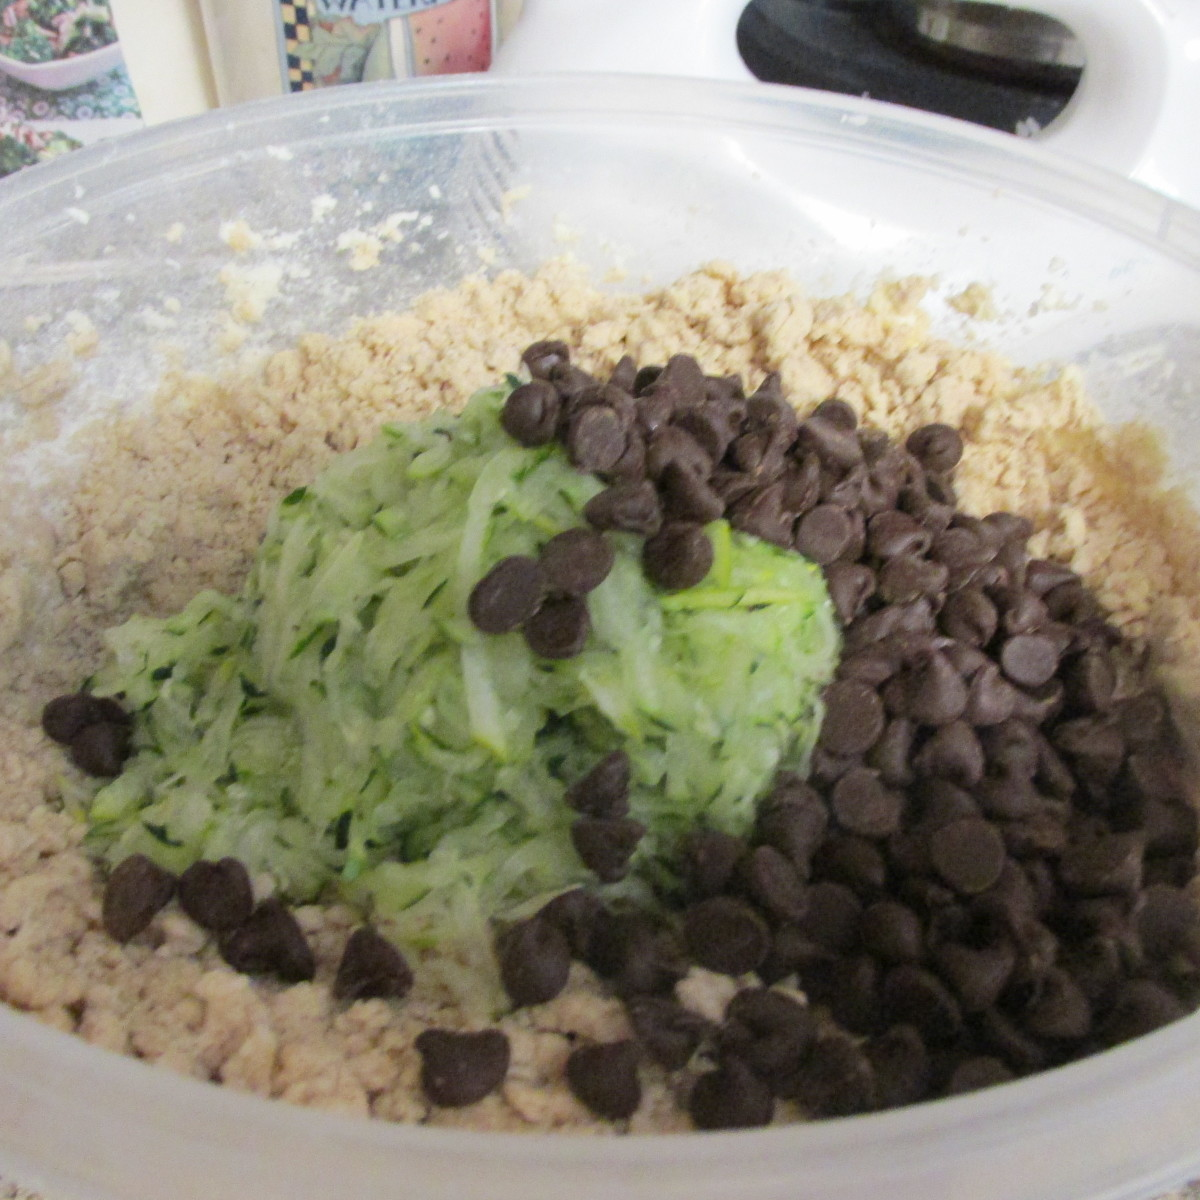 Add the zucchini and chocolate chips